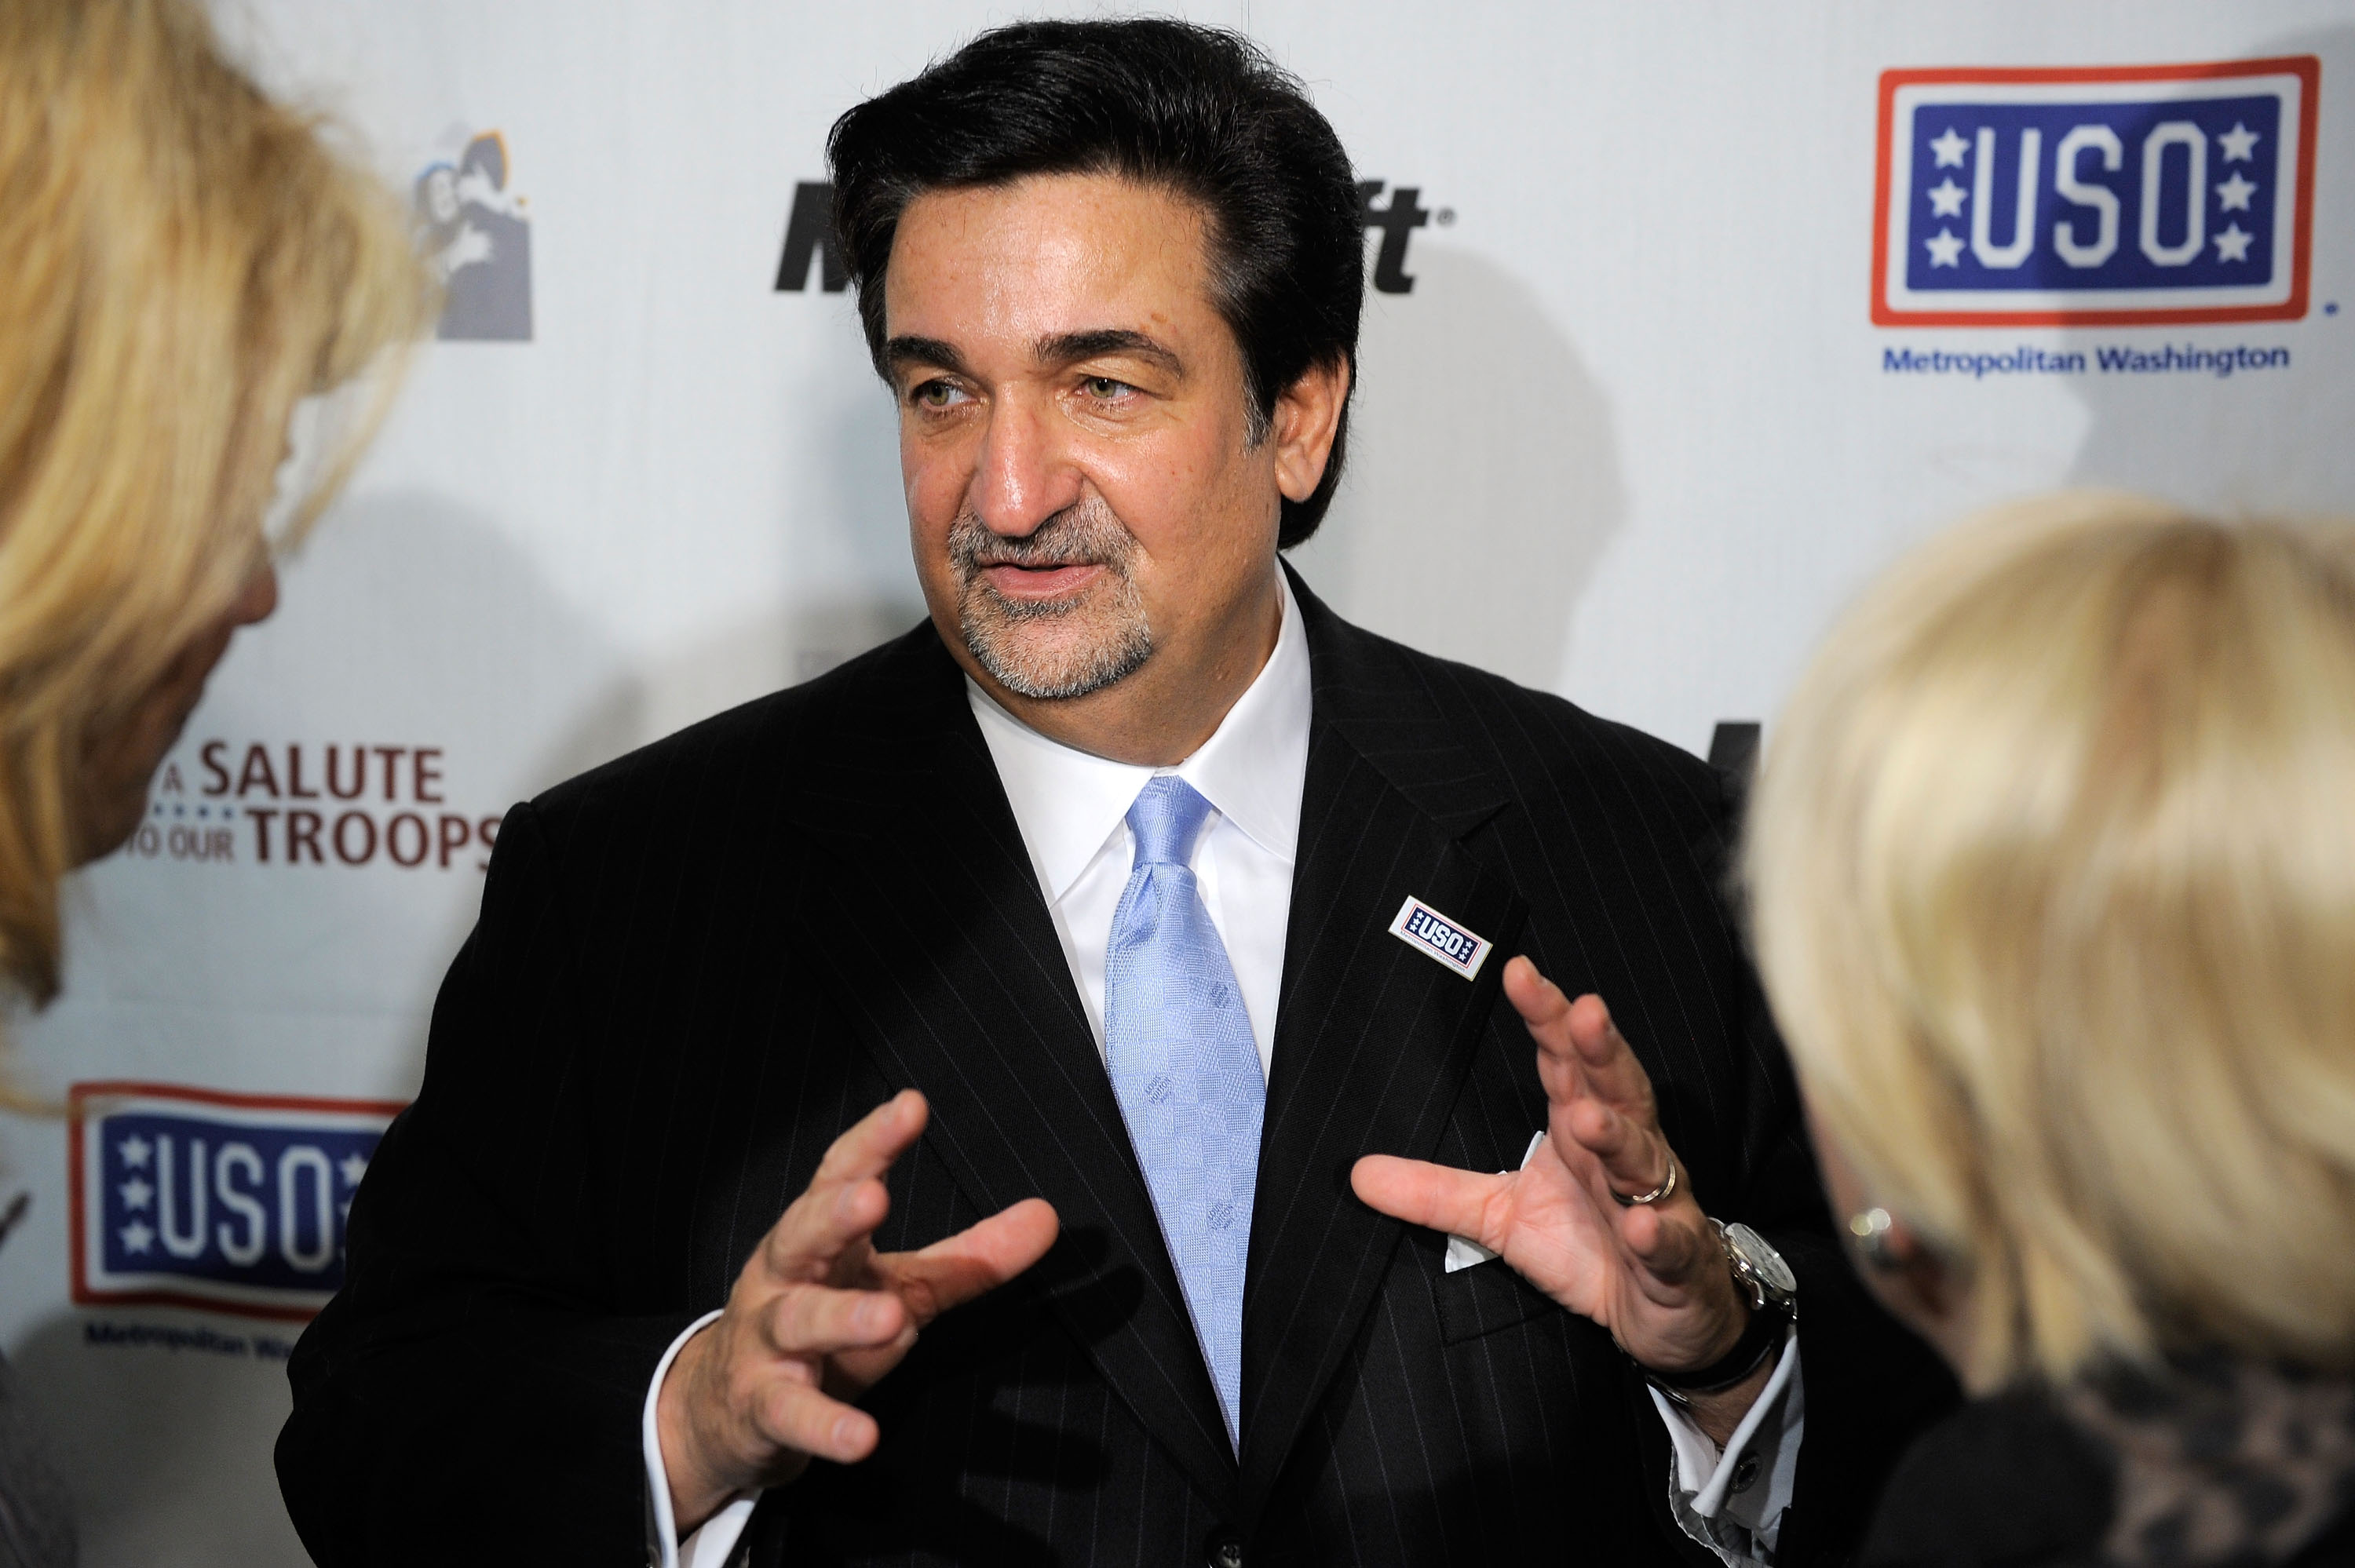 ARLINGTON, VA - NOVEMBER 09:  Ted Leonsis, owner of the Washington Capitols speaks during Microsoft's 'A Salute to Our Troops' Operation USO Care Package Day at Kettler Iceplex on November 9, 2009 in Arlington, Virginia.  (Photo by Jemal Countess/Getty Im